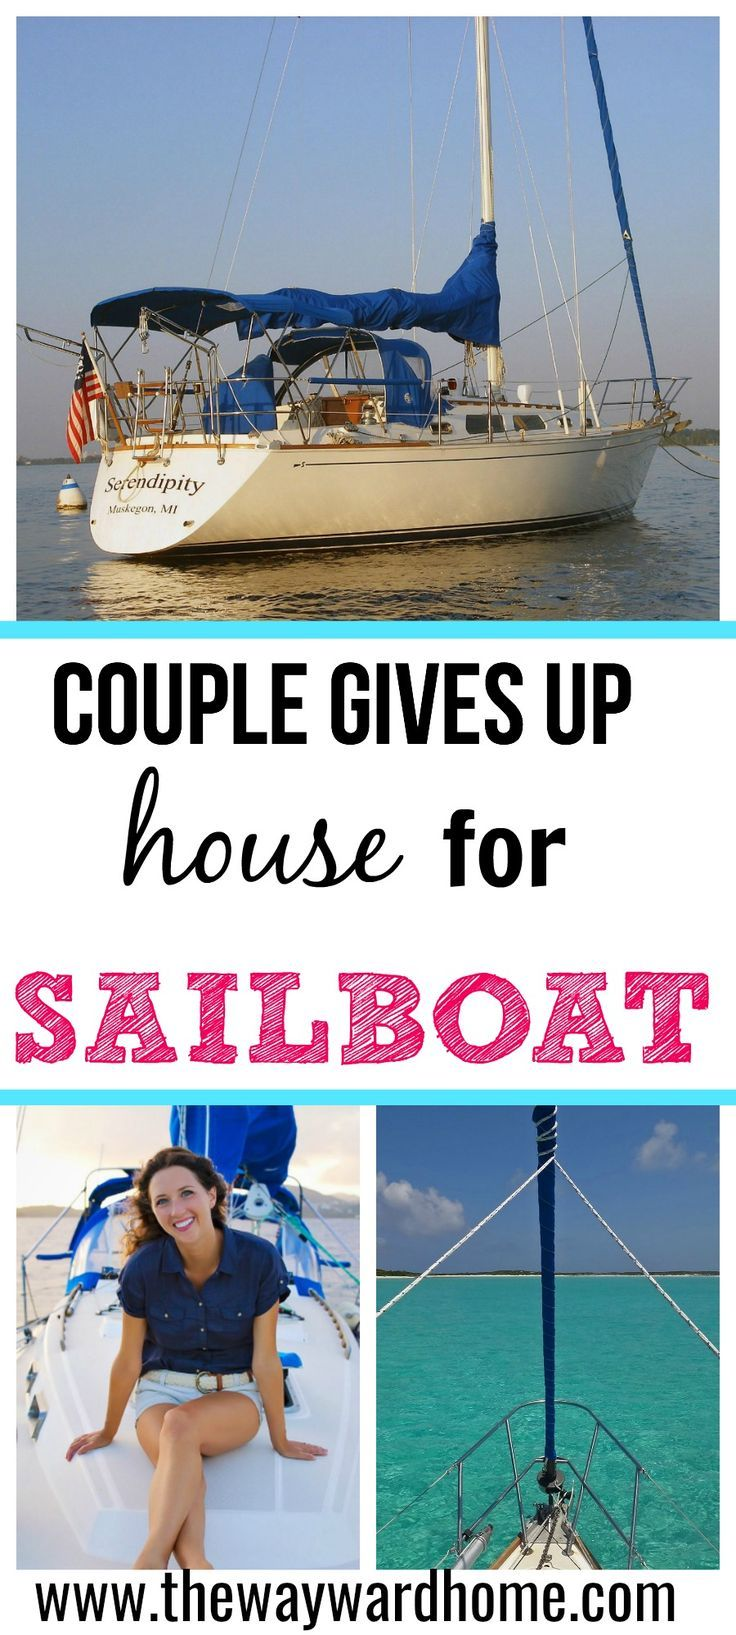 Matt and Jessica gave up life on land to buy a sailboat, and haven't looked back. They love sailing, cruising and living aboard and don't want a house in the near future. #sailing #bluewater #yacht #cruising #sailboat